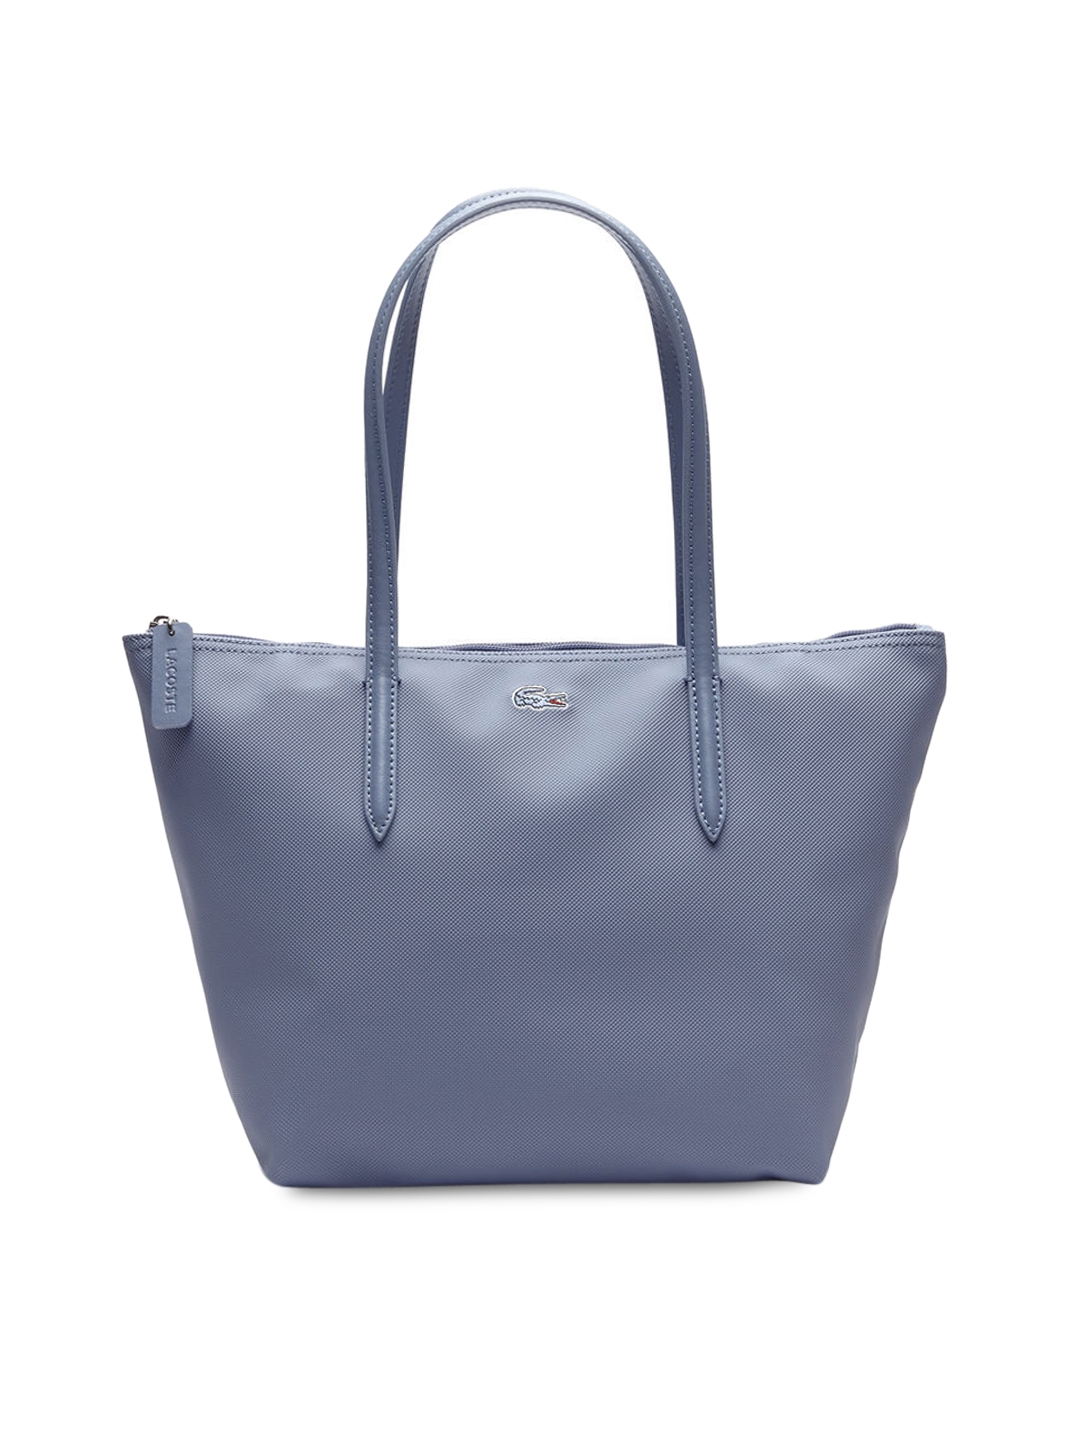 6ef6c2d7e7 Buy Lacoste Blue Solid Tote Bag - Handbags for Women 4453653